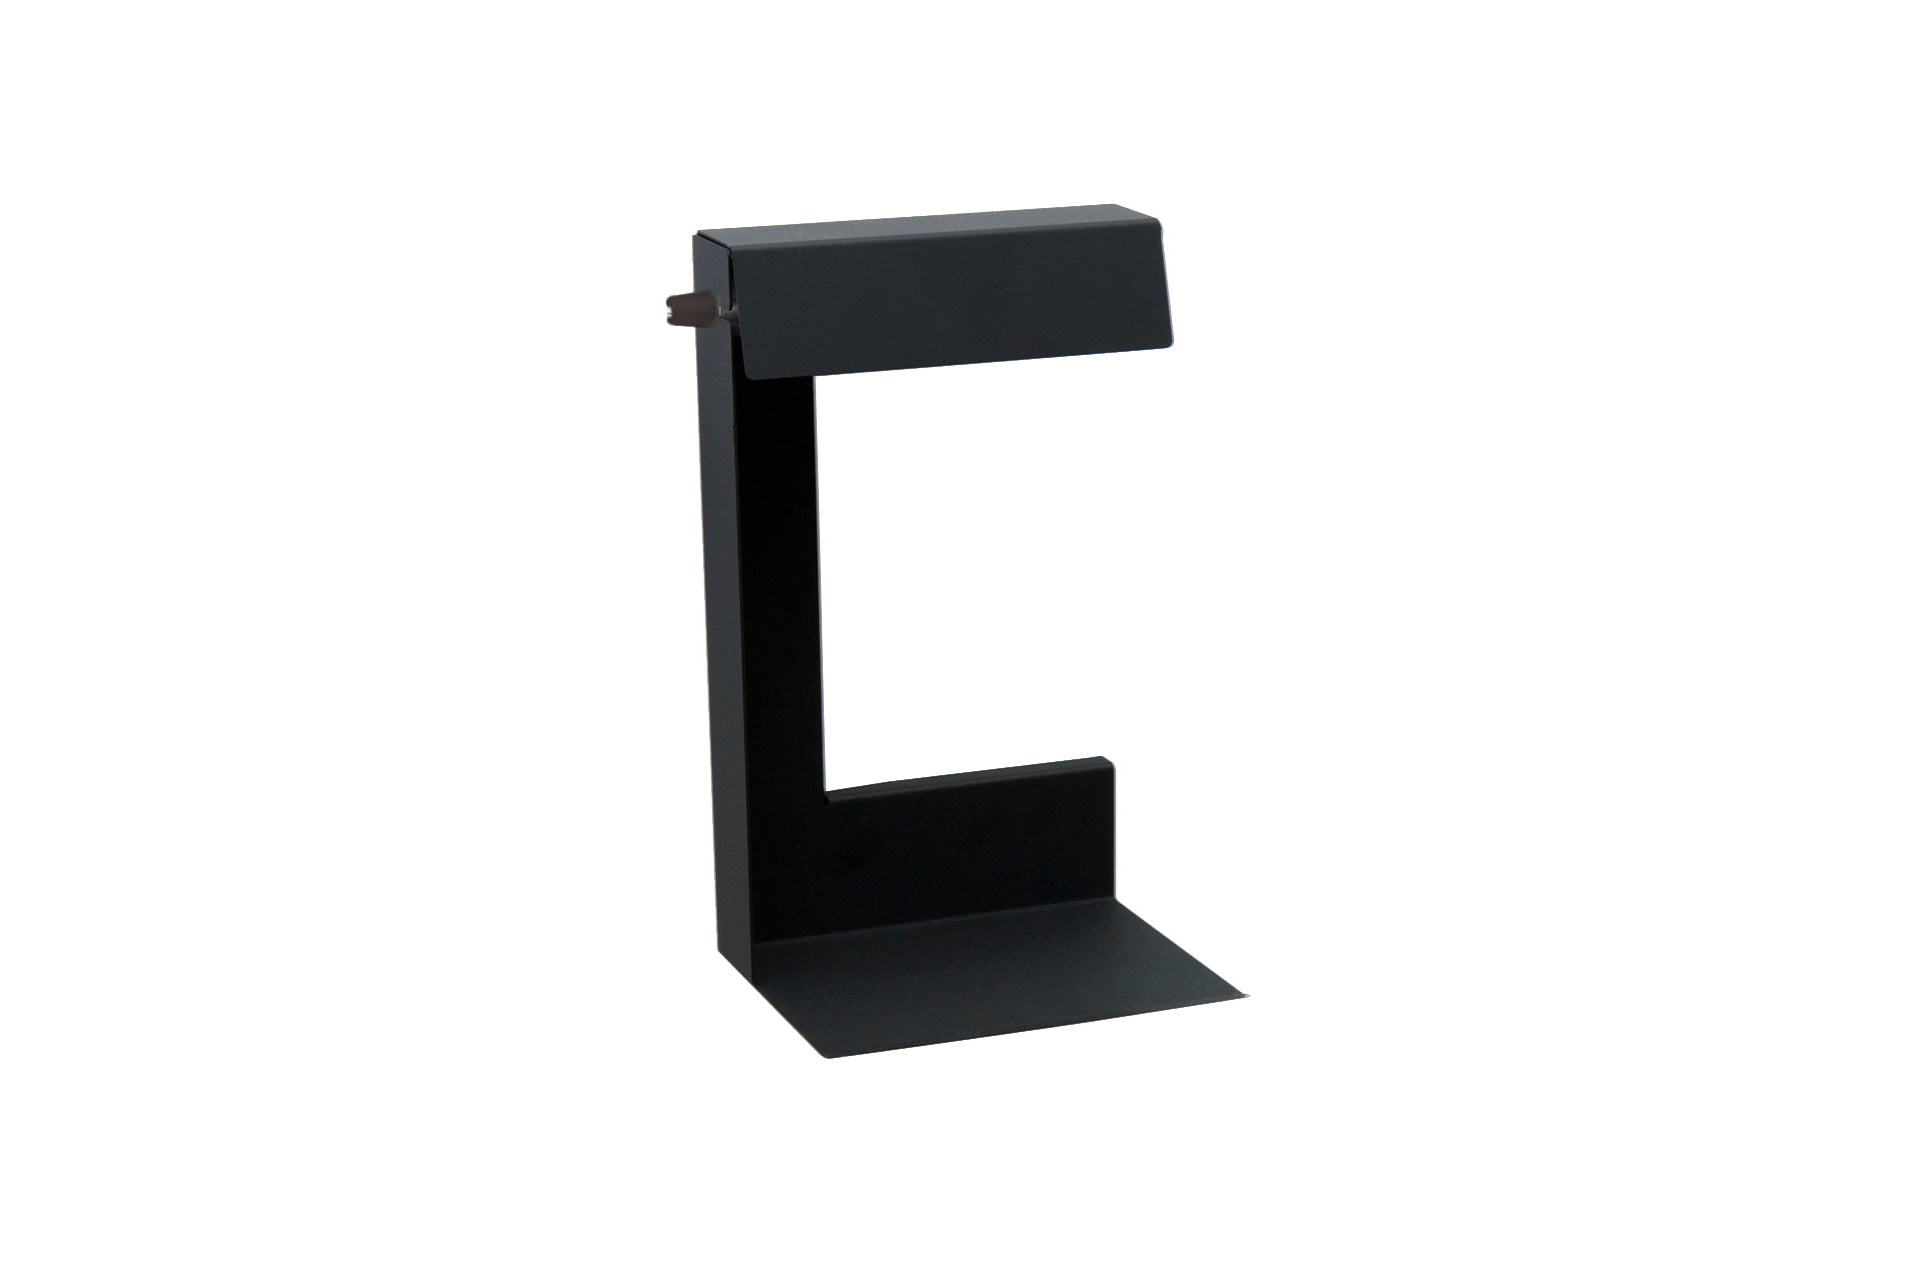 Lampe de table Left noir by Julian Appelius-PARIDEO design durable